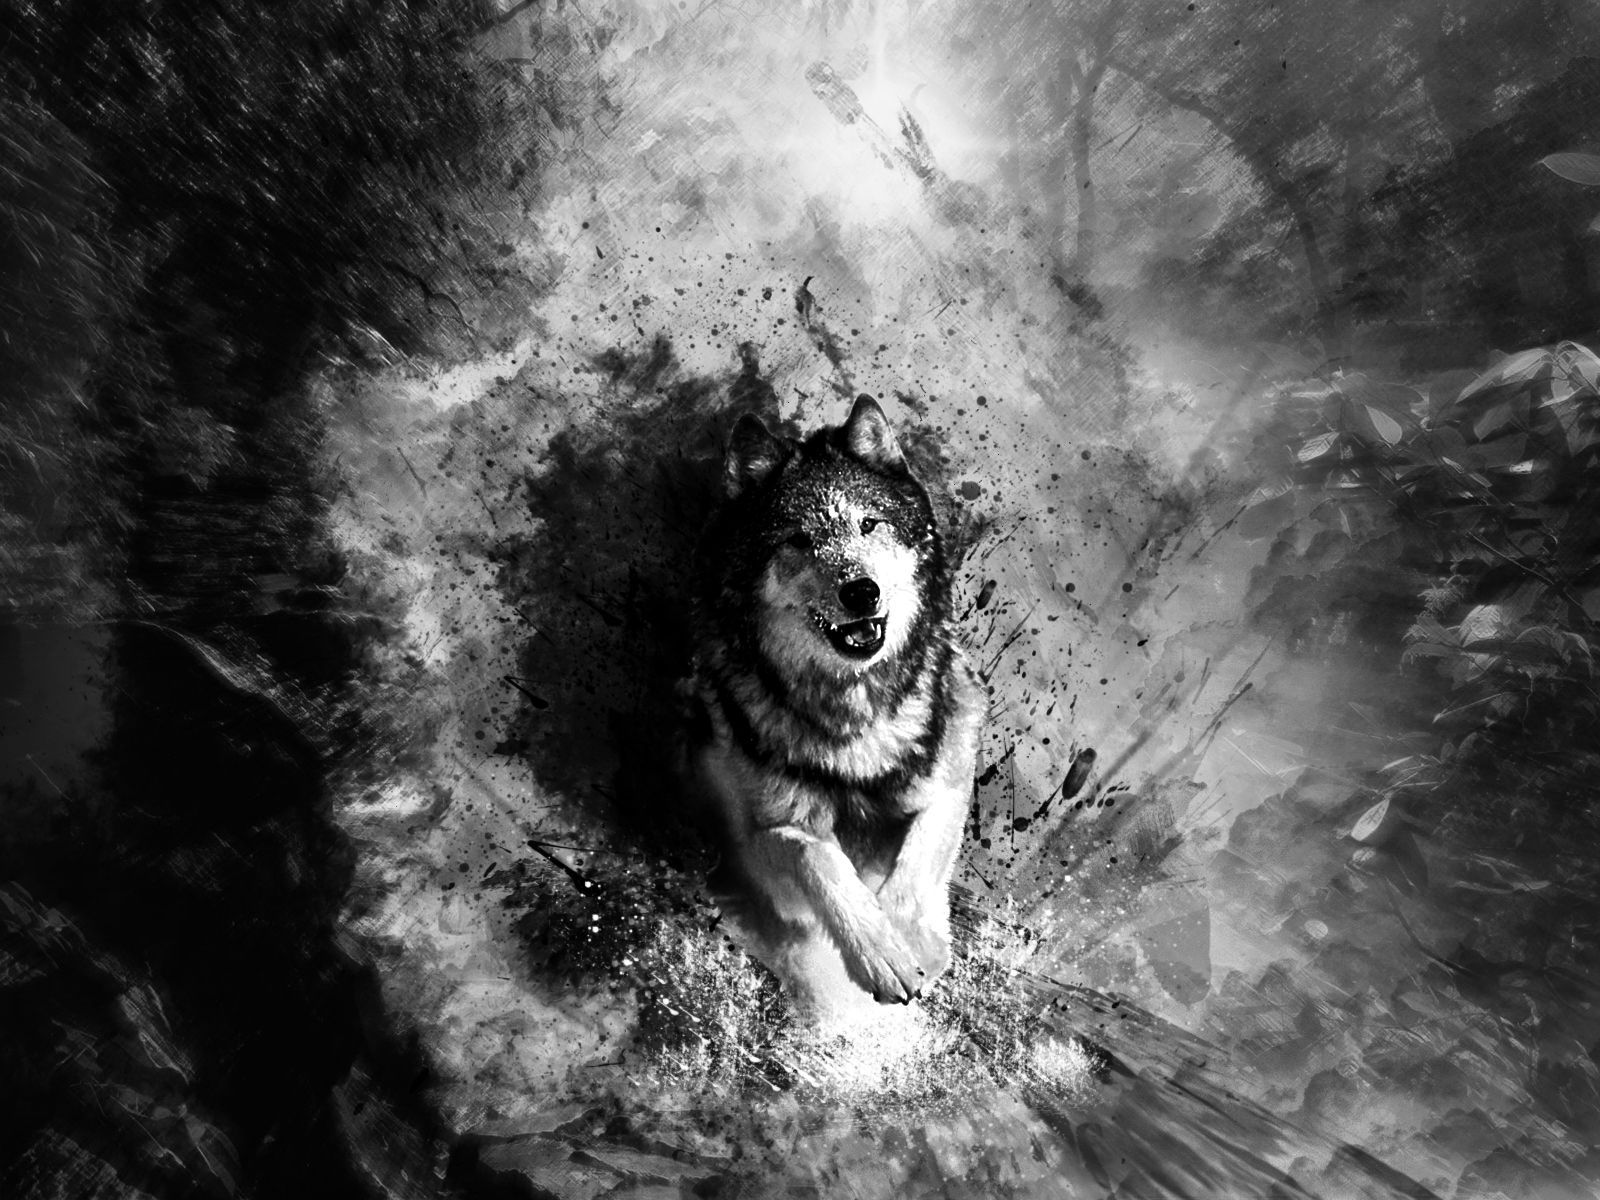 Wolf Wallpaper Black And White Wolf Print 369902 Hd Wallpaper Backgrounds Download